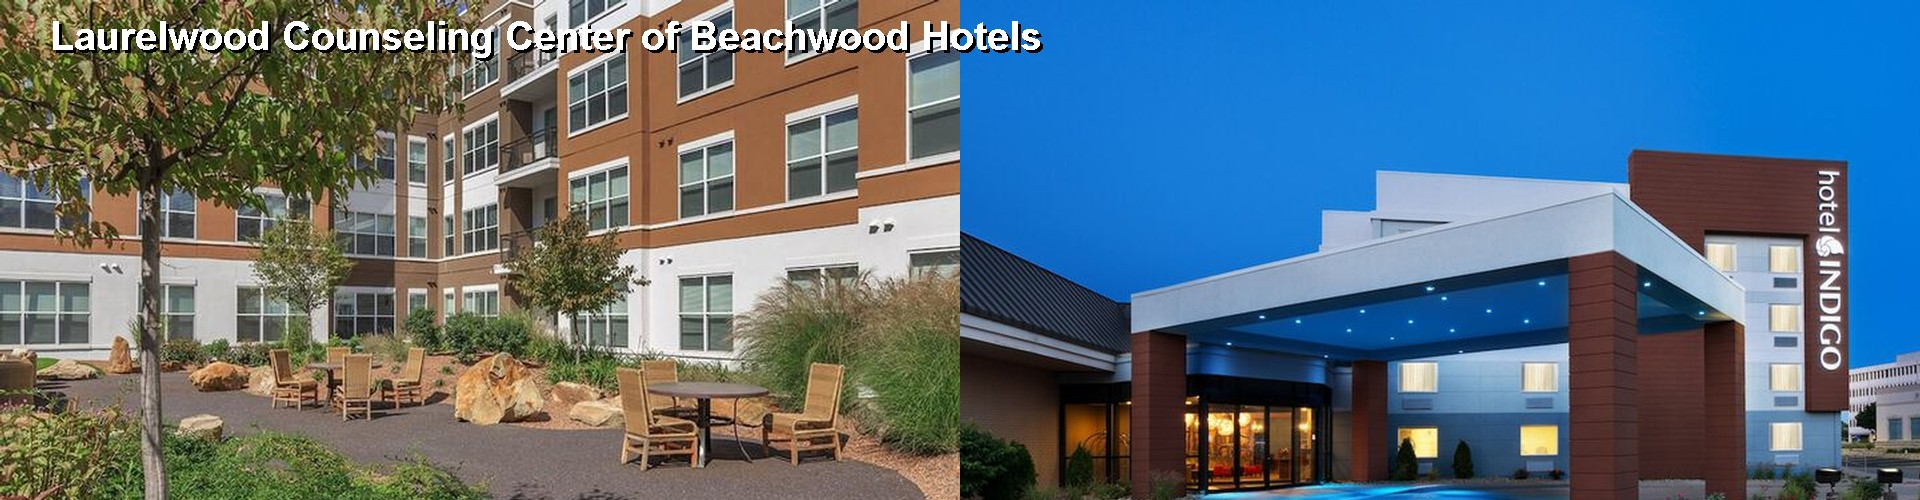 5 Best Hotels near Laurelwood Counseling Center of Beachwood